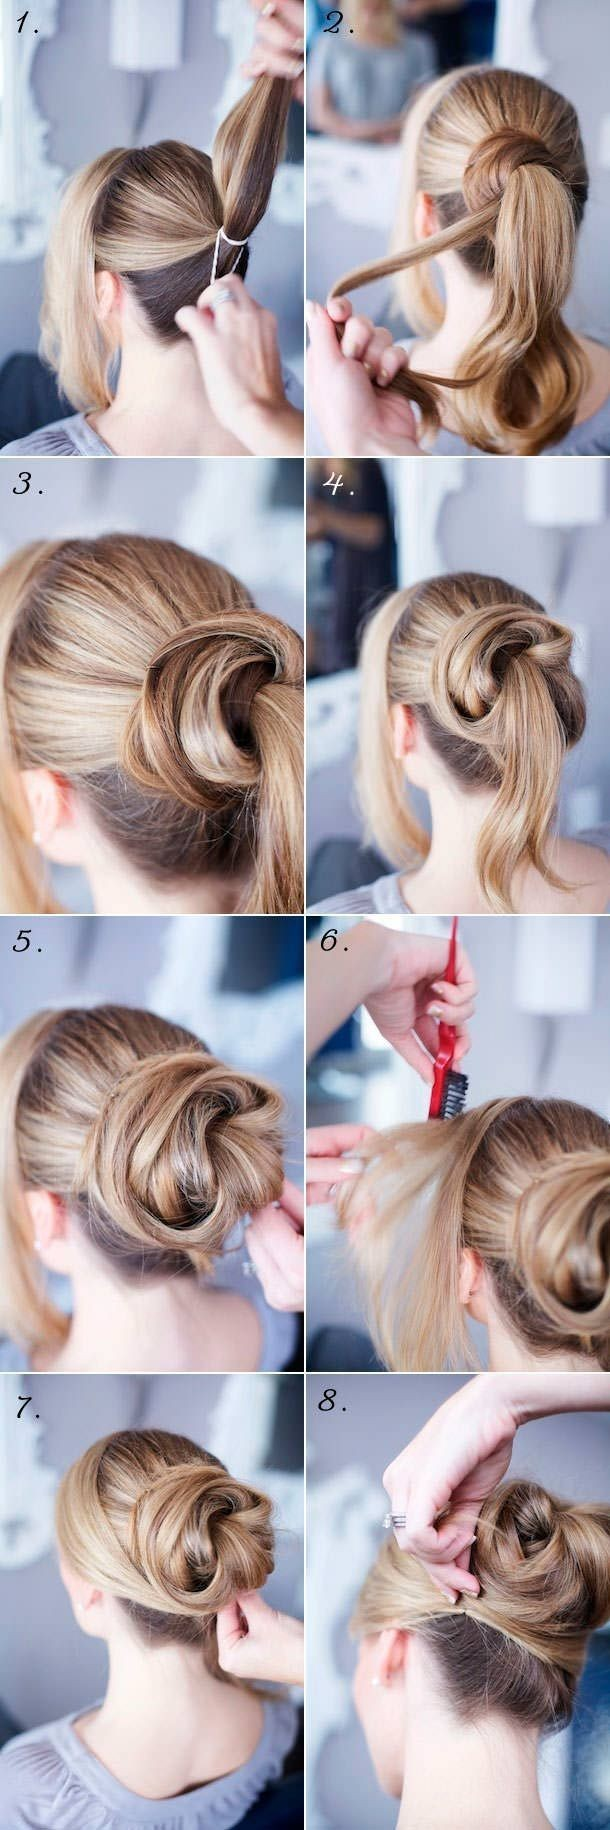 Hairstyles to Rock this Season: Cute Updo Tutorials for Long Hair